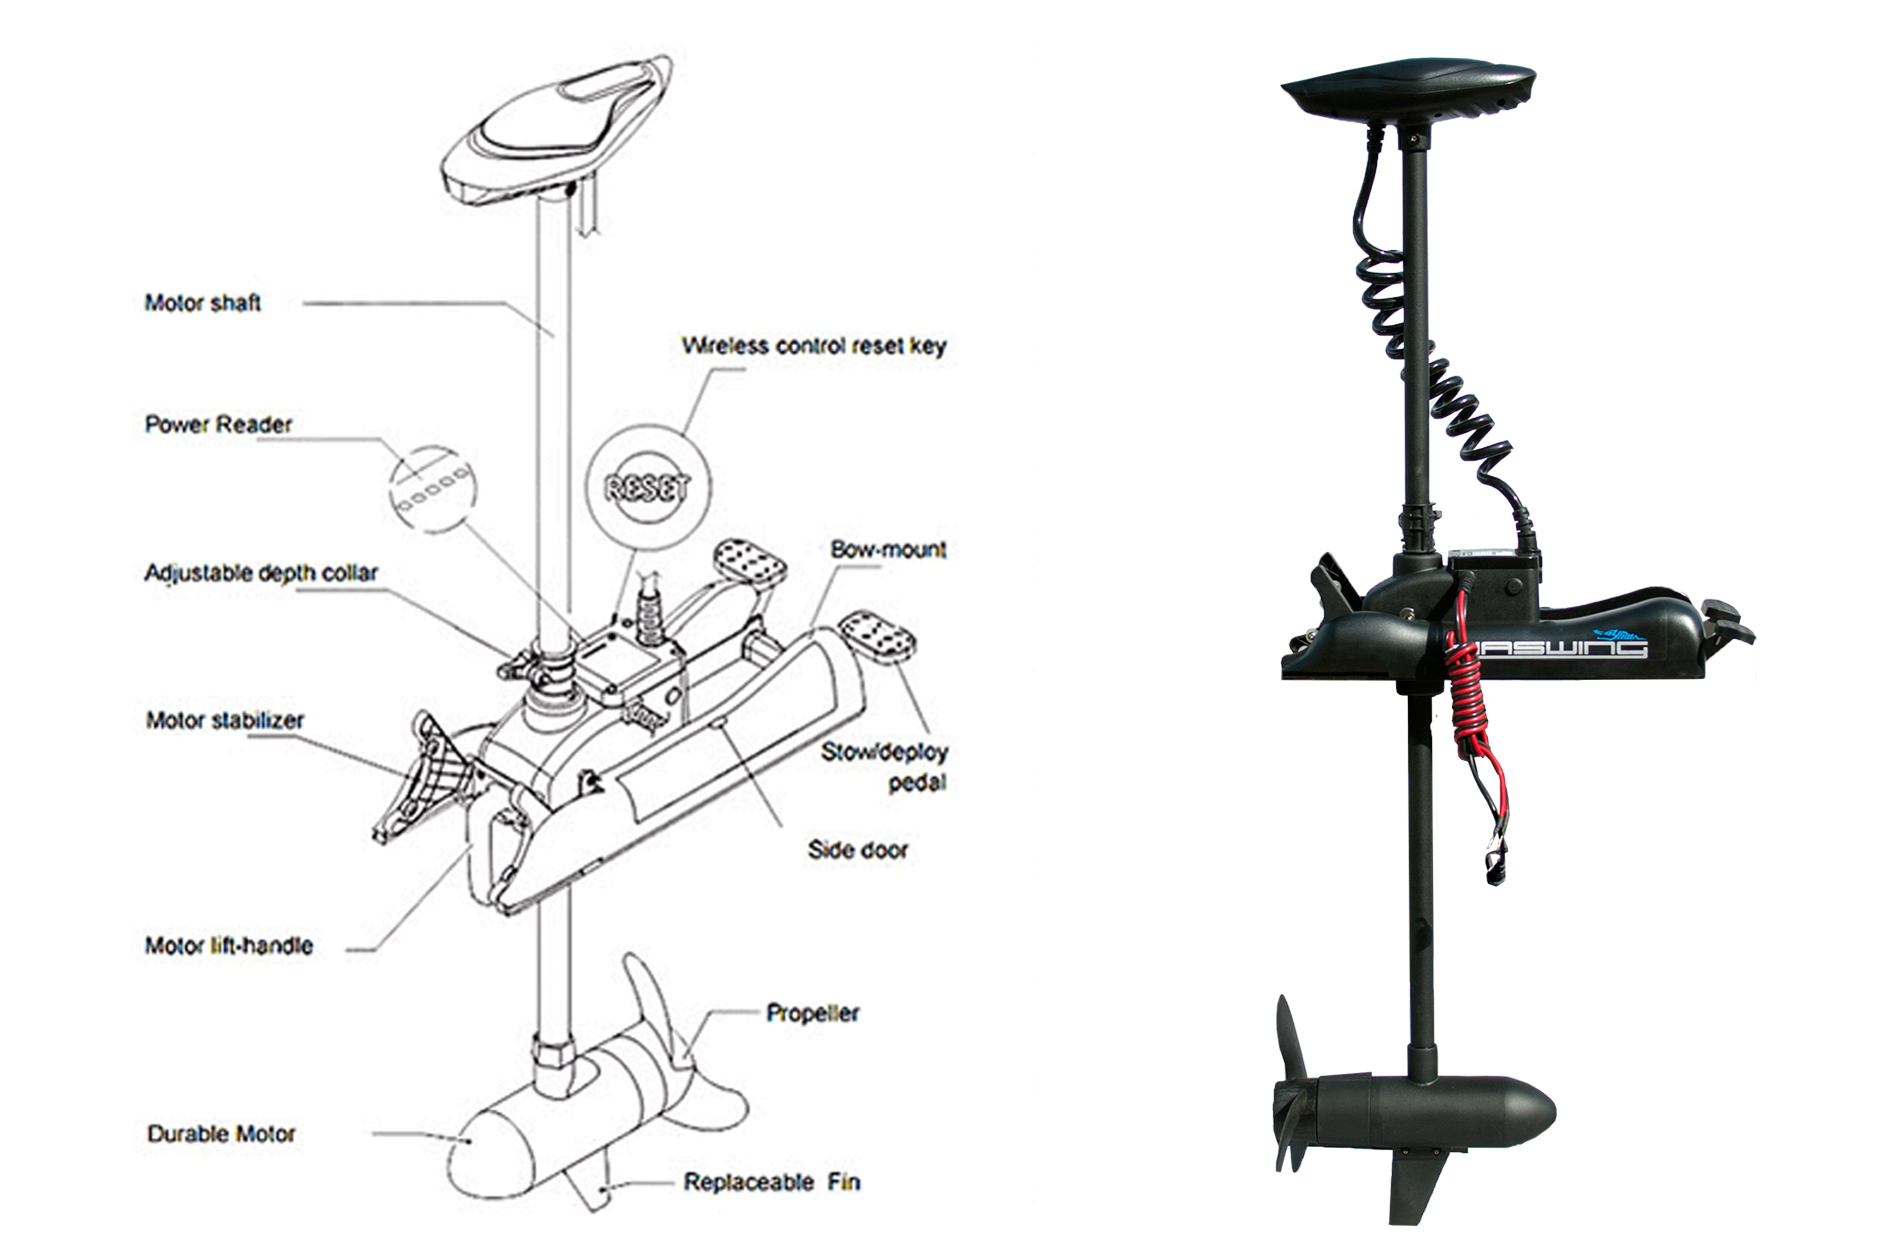 bow mount trolling motor cayman 80 lbs electric haswing